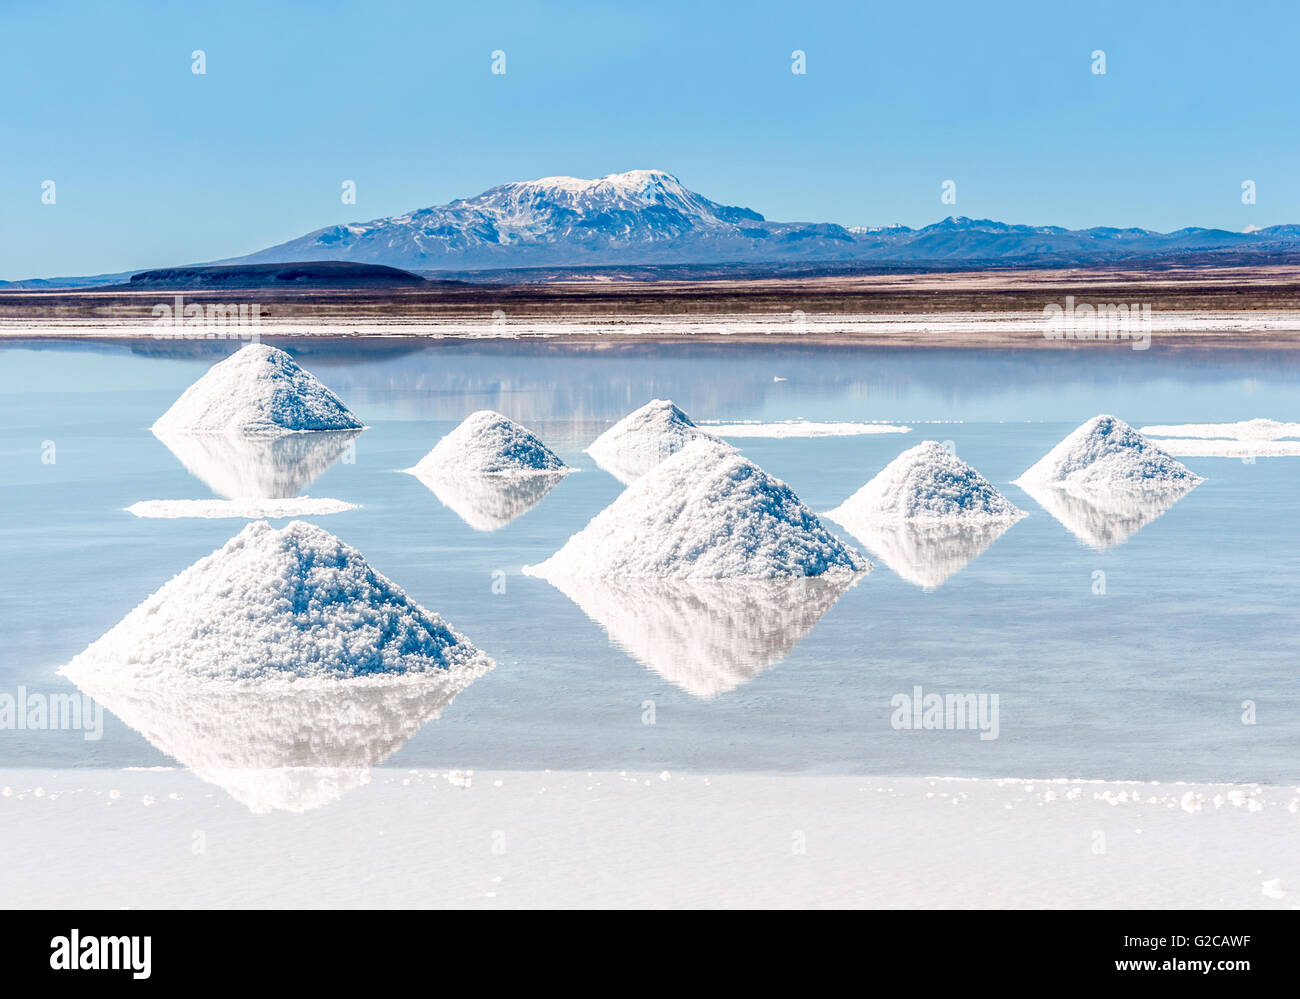 Salt lake - Salar de Uyuni in Bolivia - Stock Image